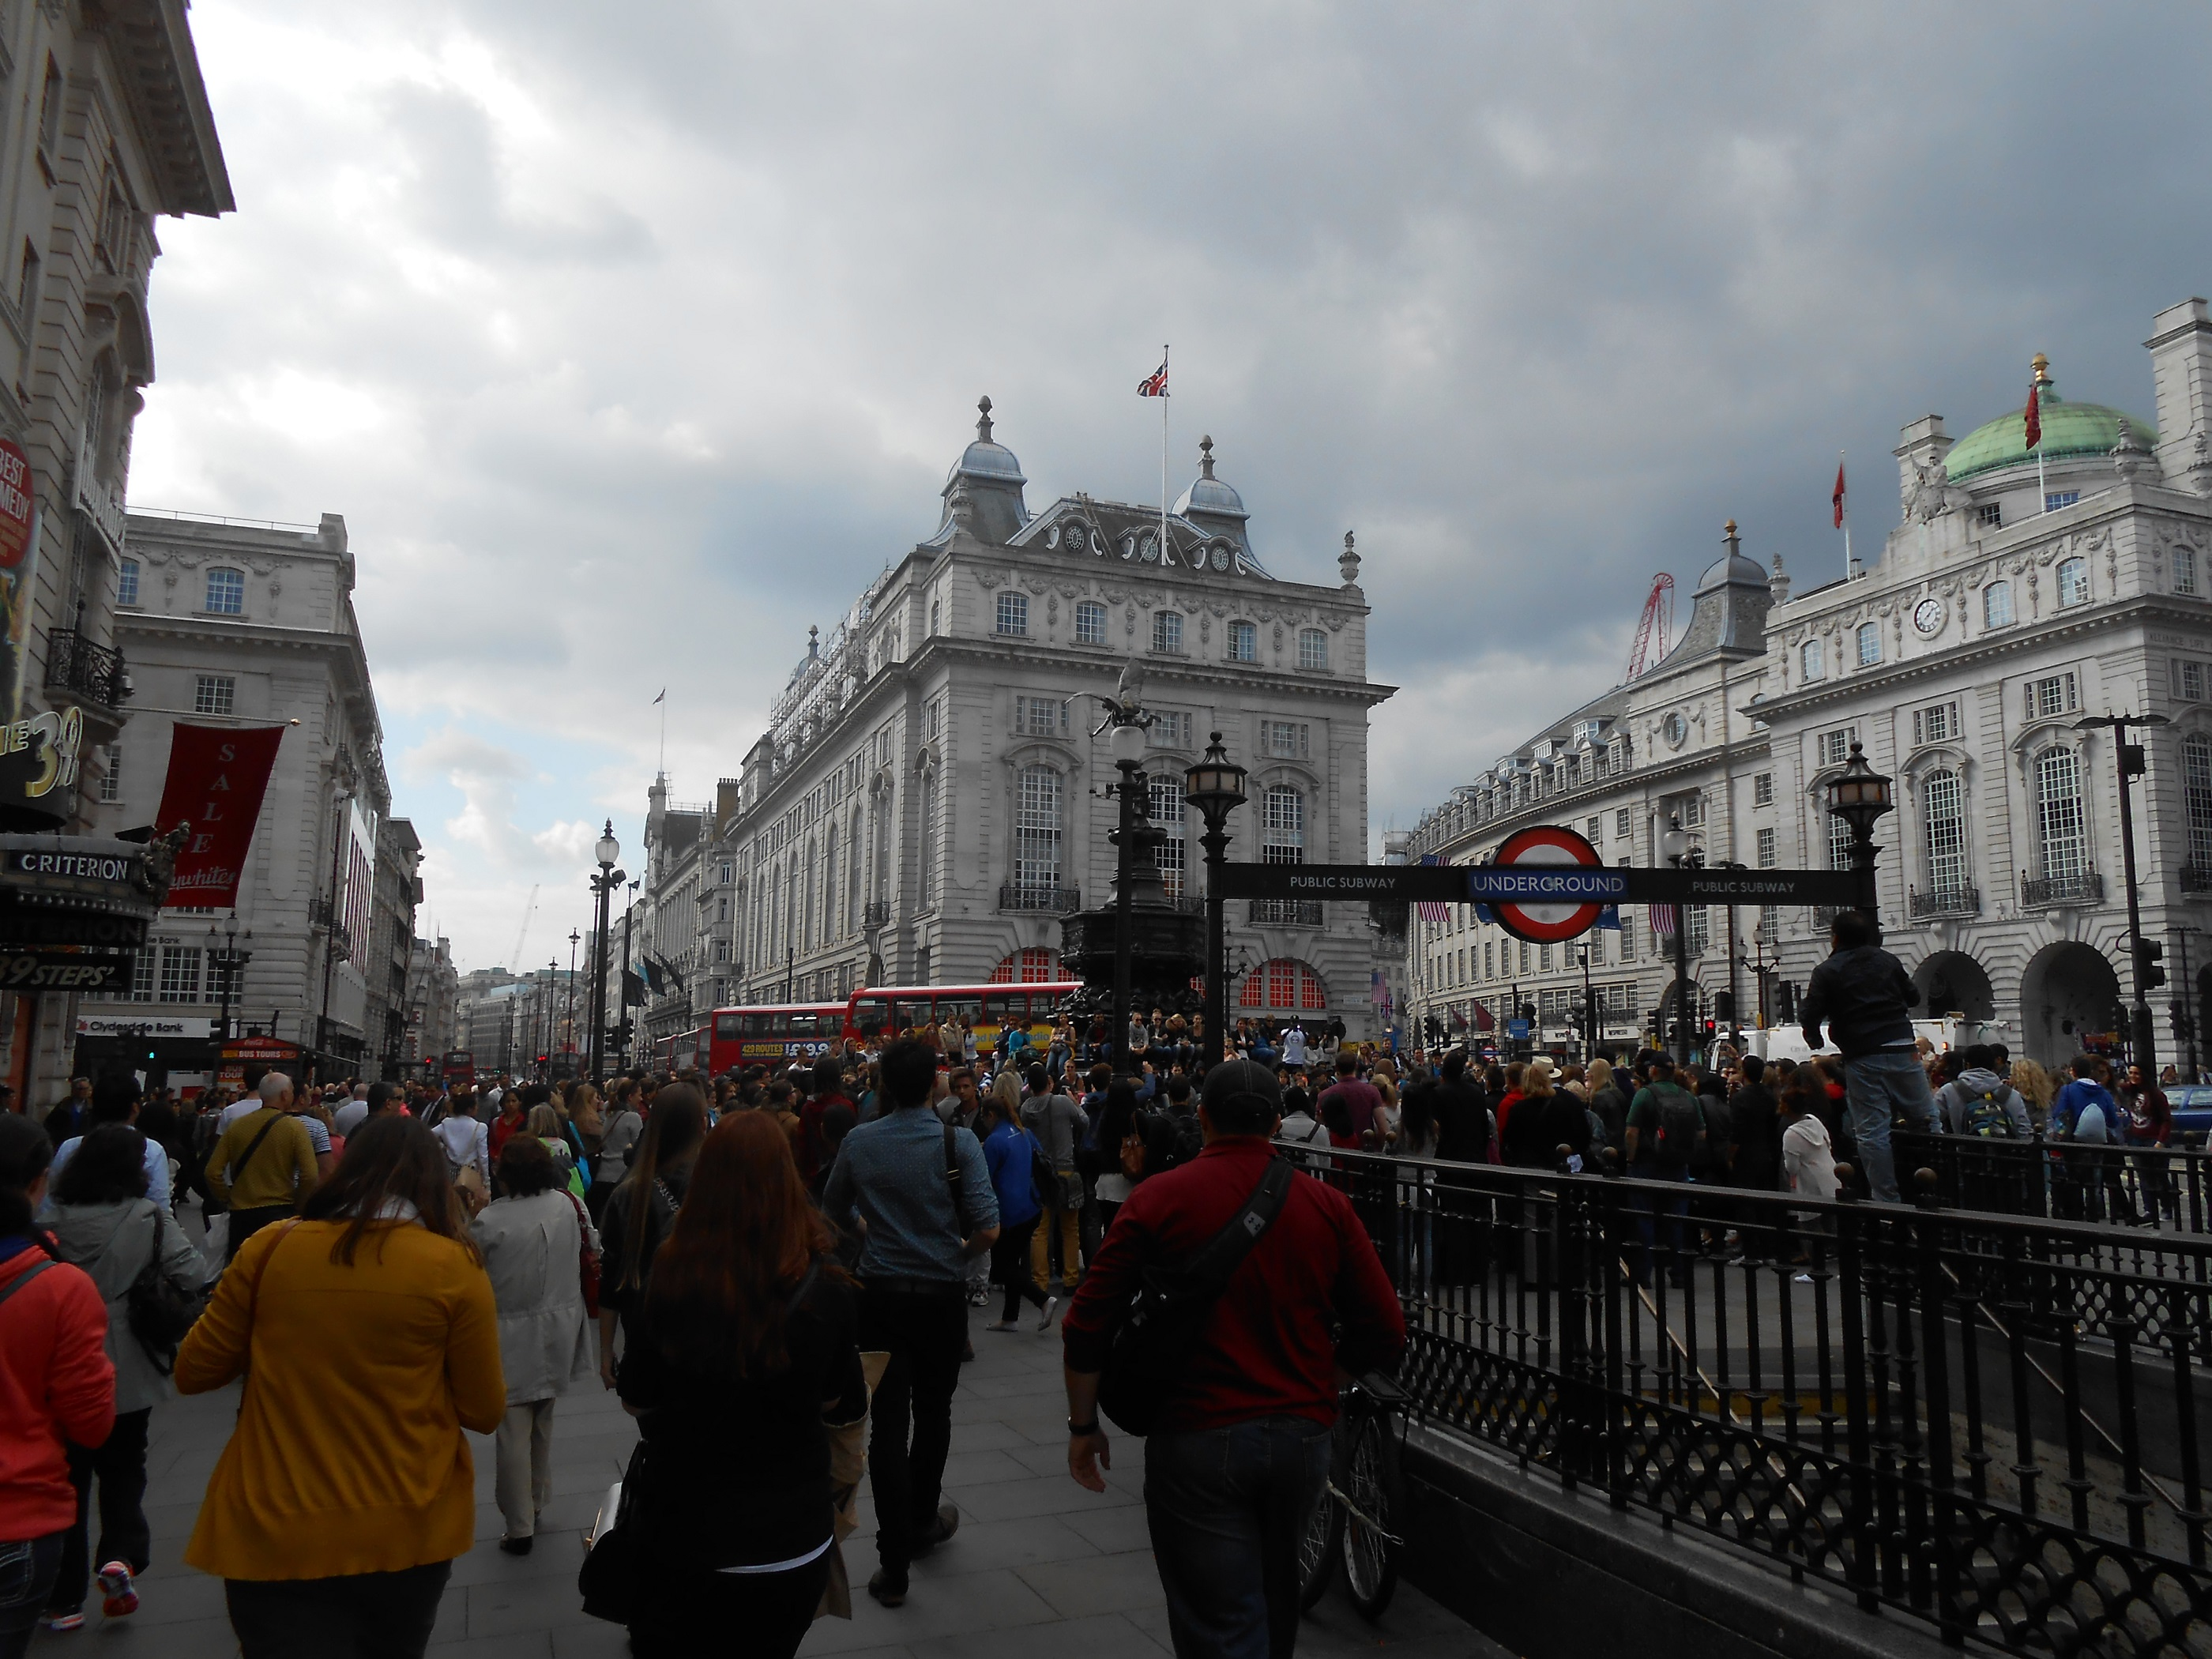 A view from a London stroll